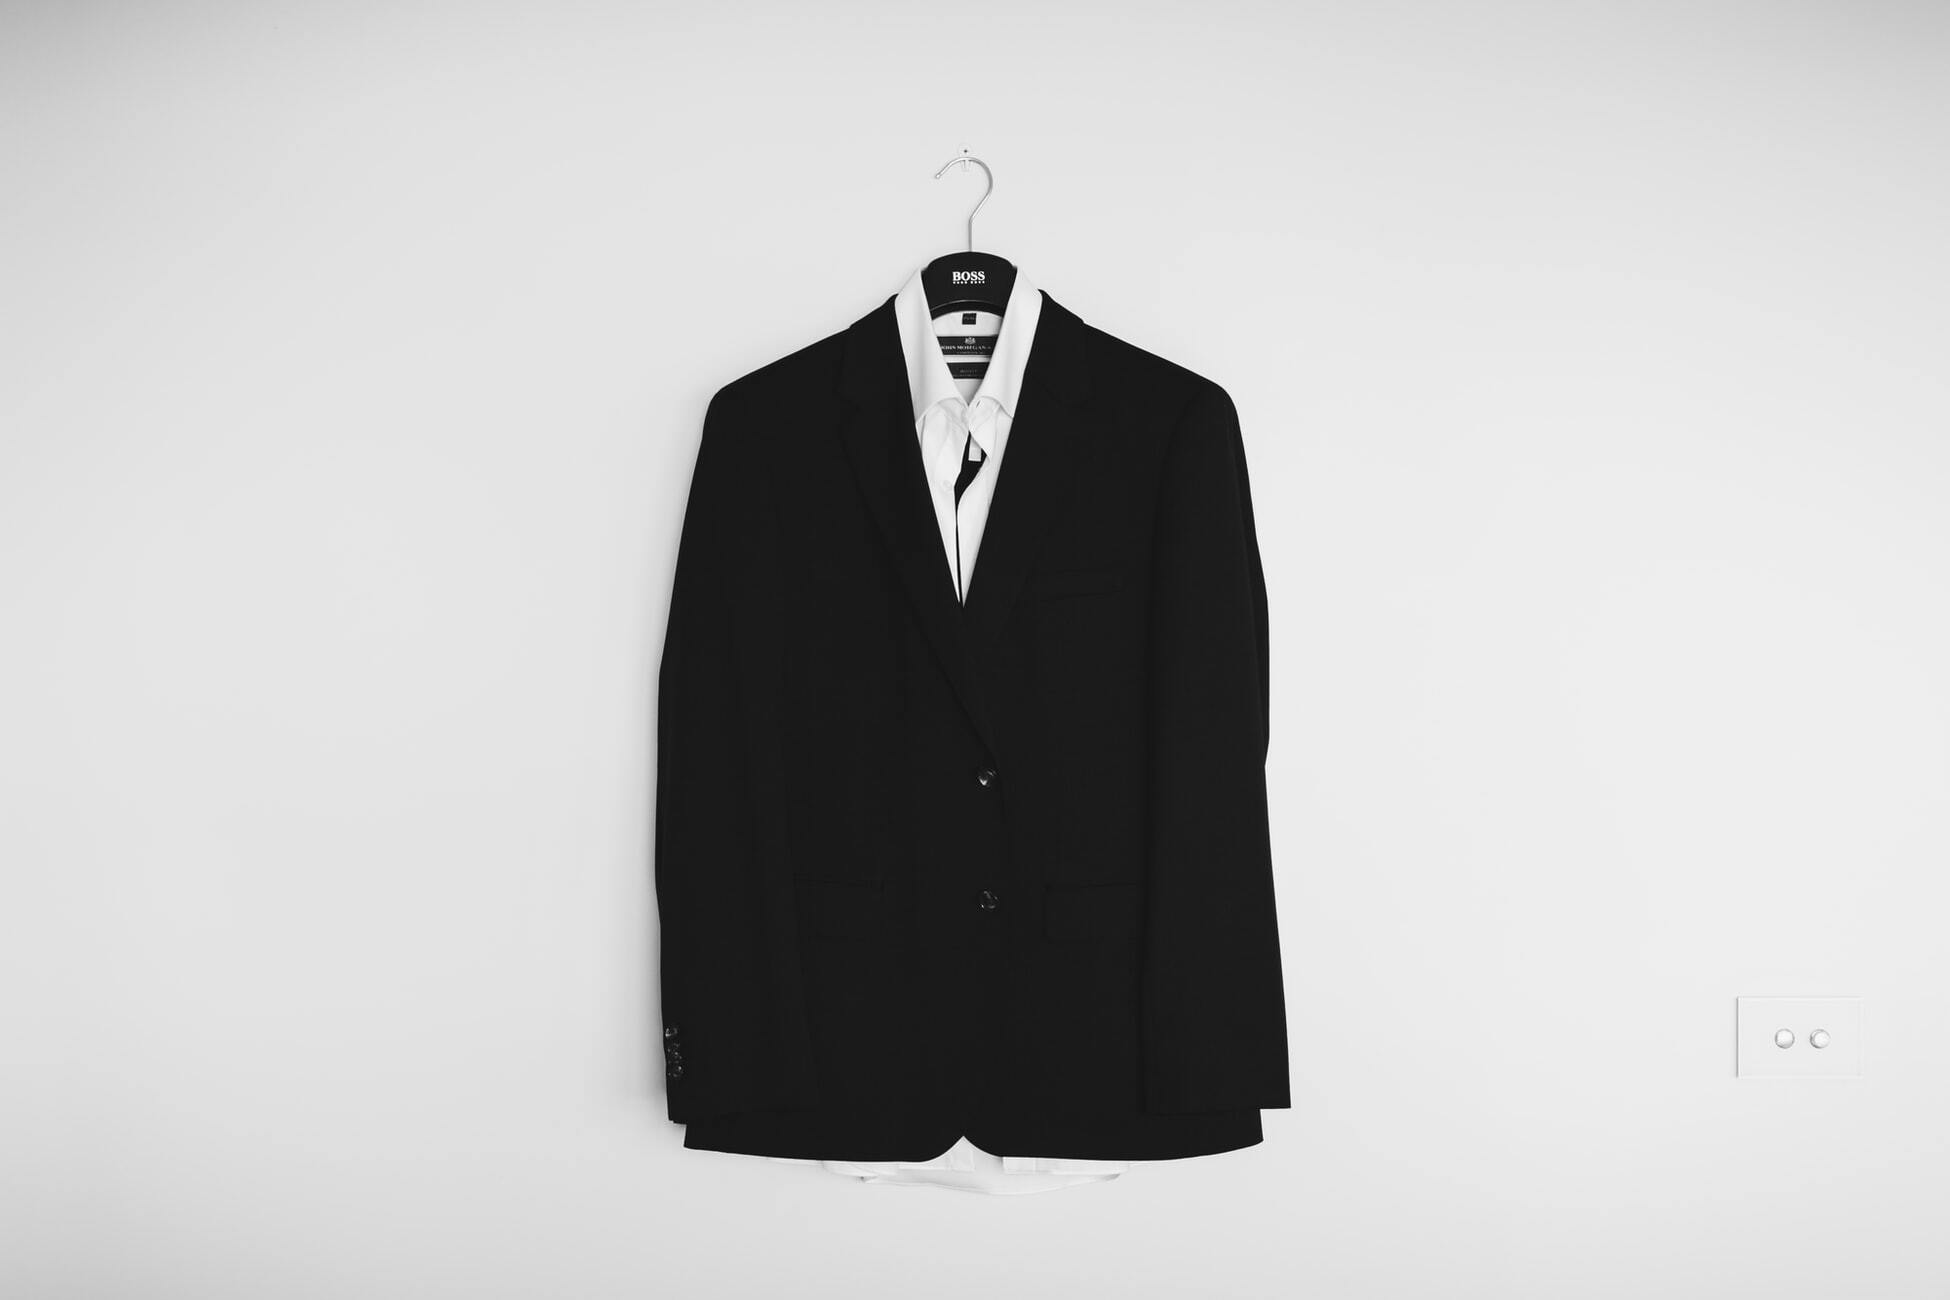 tailored suit hanging on wall